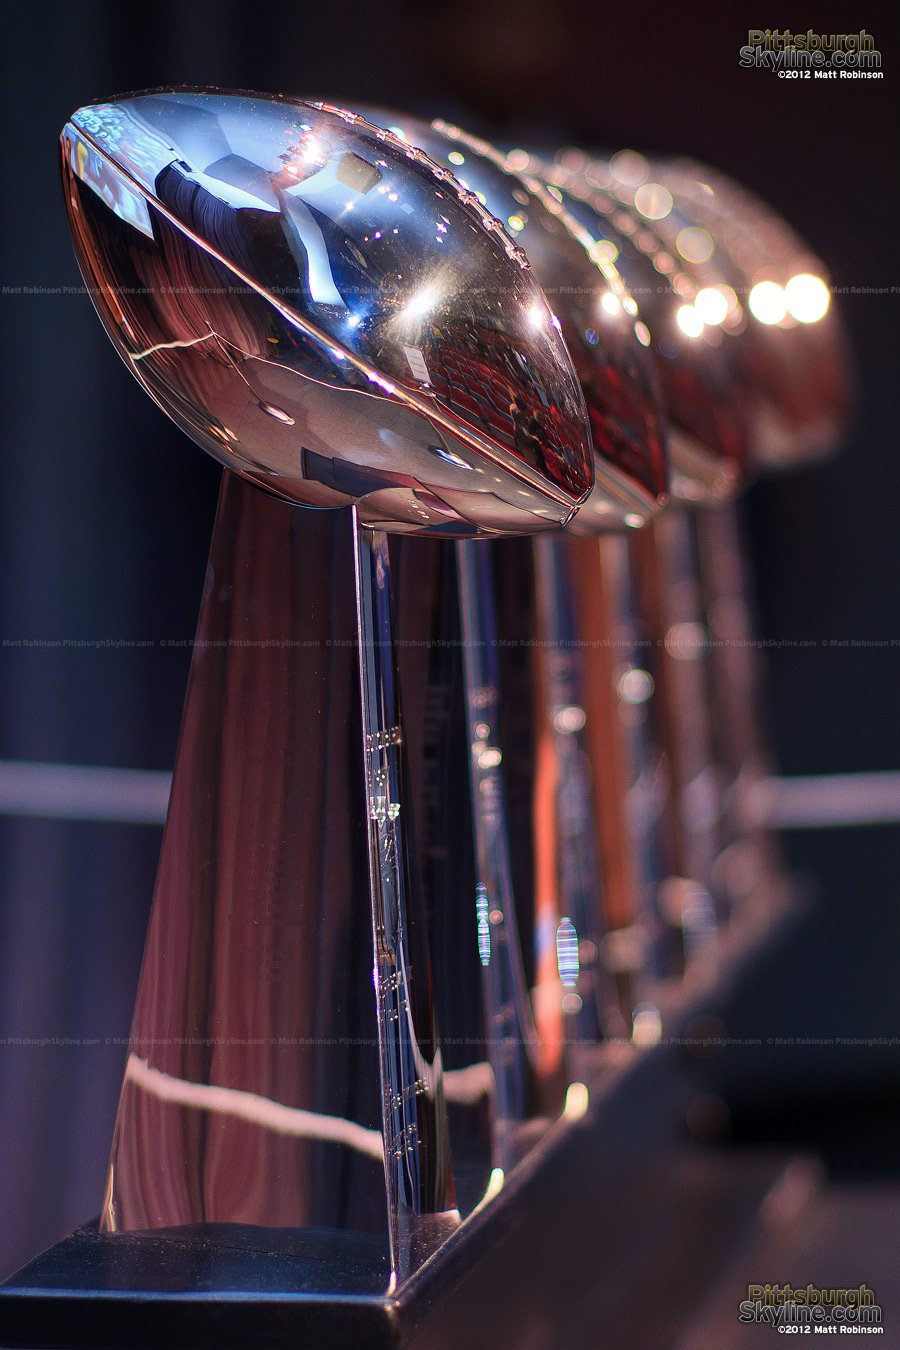 Six Steelers Superbowl Trophies